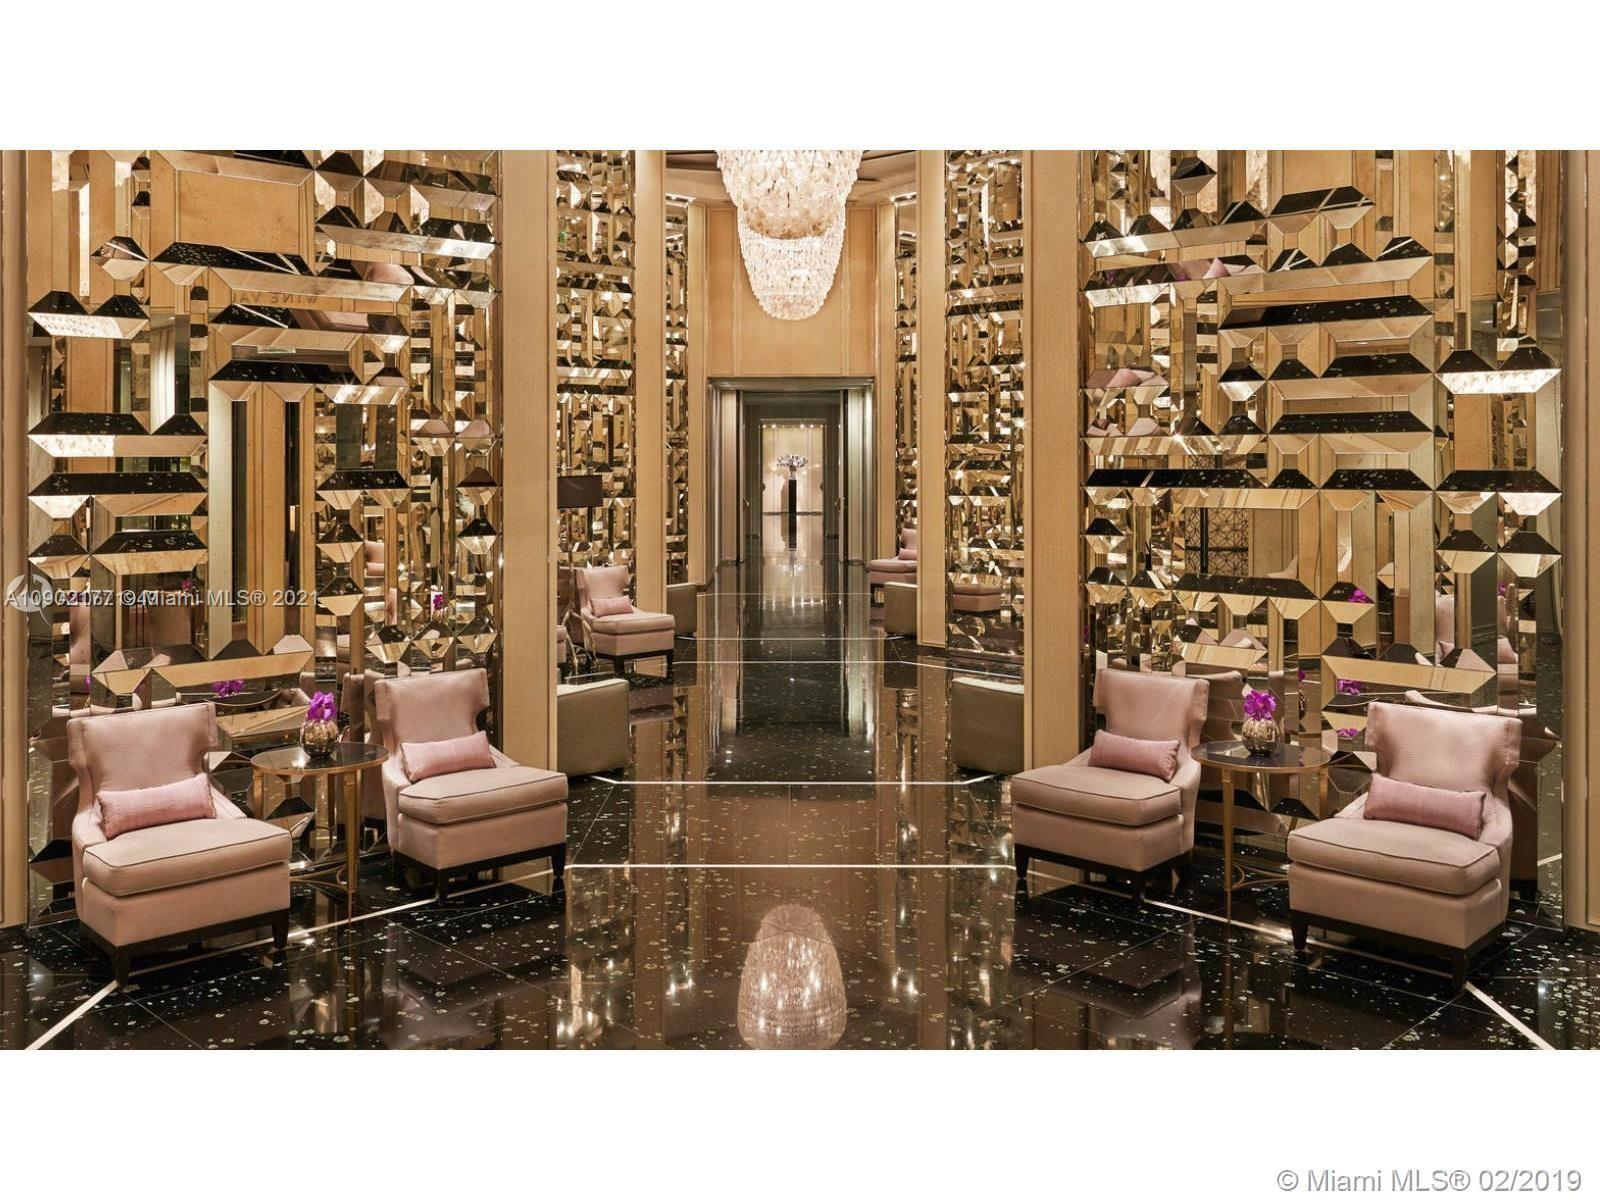 Welcome to the luxury life of the famous St Regis. Fully furnished, equipped and decorated by the world known Yabu Pushelberg. 1 bedroom plus den, which is converted to the second bedroom, 2 full large marble bathrooms. Square footage along with two enormous terrasses is 1475 sq feet. Unobstructed ocean view with the desirable northeast exposure. Enjoy all the 5 star resort amenities St Regis may offer. 2 gourmet restaurants, state of art Spa and fitness center, butler, concierge, two infinity  pools and beach services. Cross the street from the well known Bal Harbour shops.